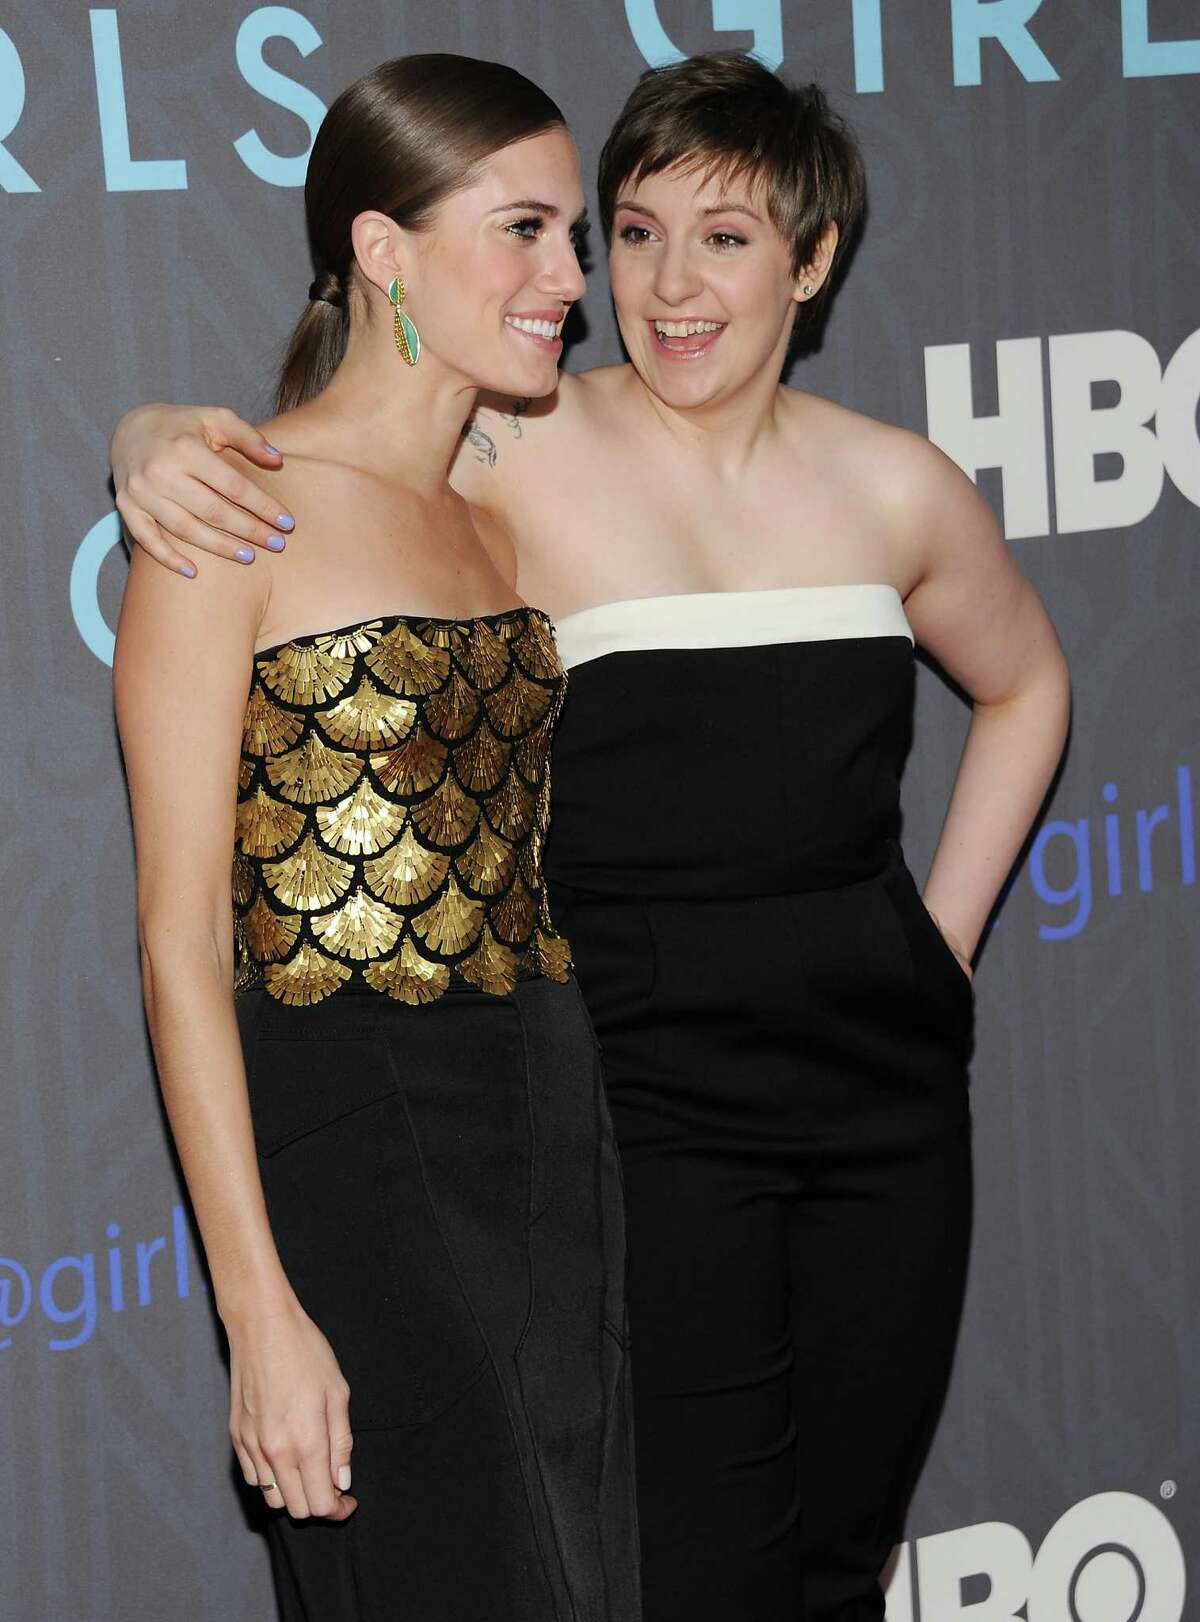 Actresses Allison Williams, left, and Lena Dunham pose together on the red carpet at the HBO premiere of